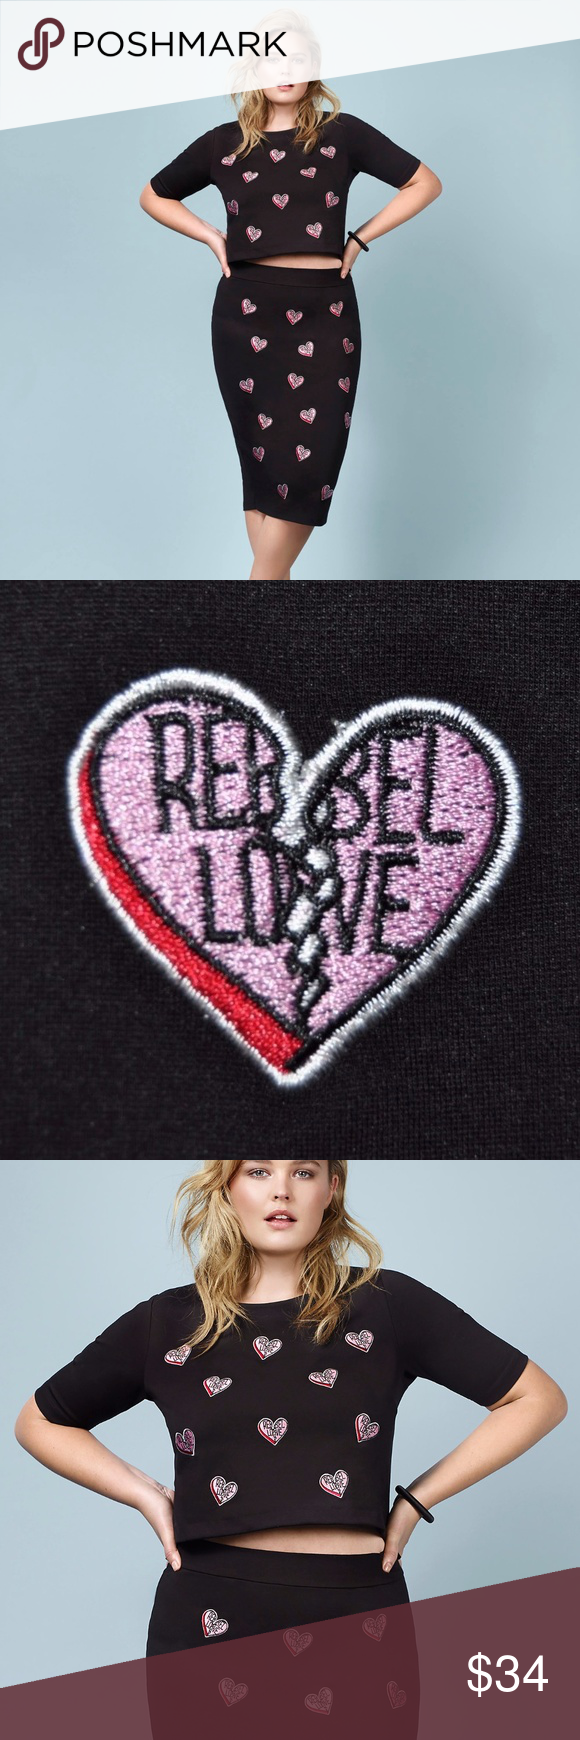 """New TORRID Rebel Wilson Black Heart Patch Crop Top Rebel Wilson for Torrid Heart Patch Crop Top  DETAILS This black ponte crop top is stretchy but form-fitting. Broken heart """"Rebel Love"""" patches lend a playful touch to the heartbreaker style. Pair with the matching skirt or mix it up. Designed exclusively for Torrid by Rebel Wilson.  Model is 5'11"""", size 1 Rayon/nylon/spandex Hand wash cold, dry flat  size 1 (1X 14/16): bust 42, length 21  condition: new with tags smoke-free home NO TRADES torrid Tops Crop Tops"""